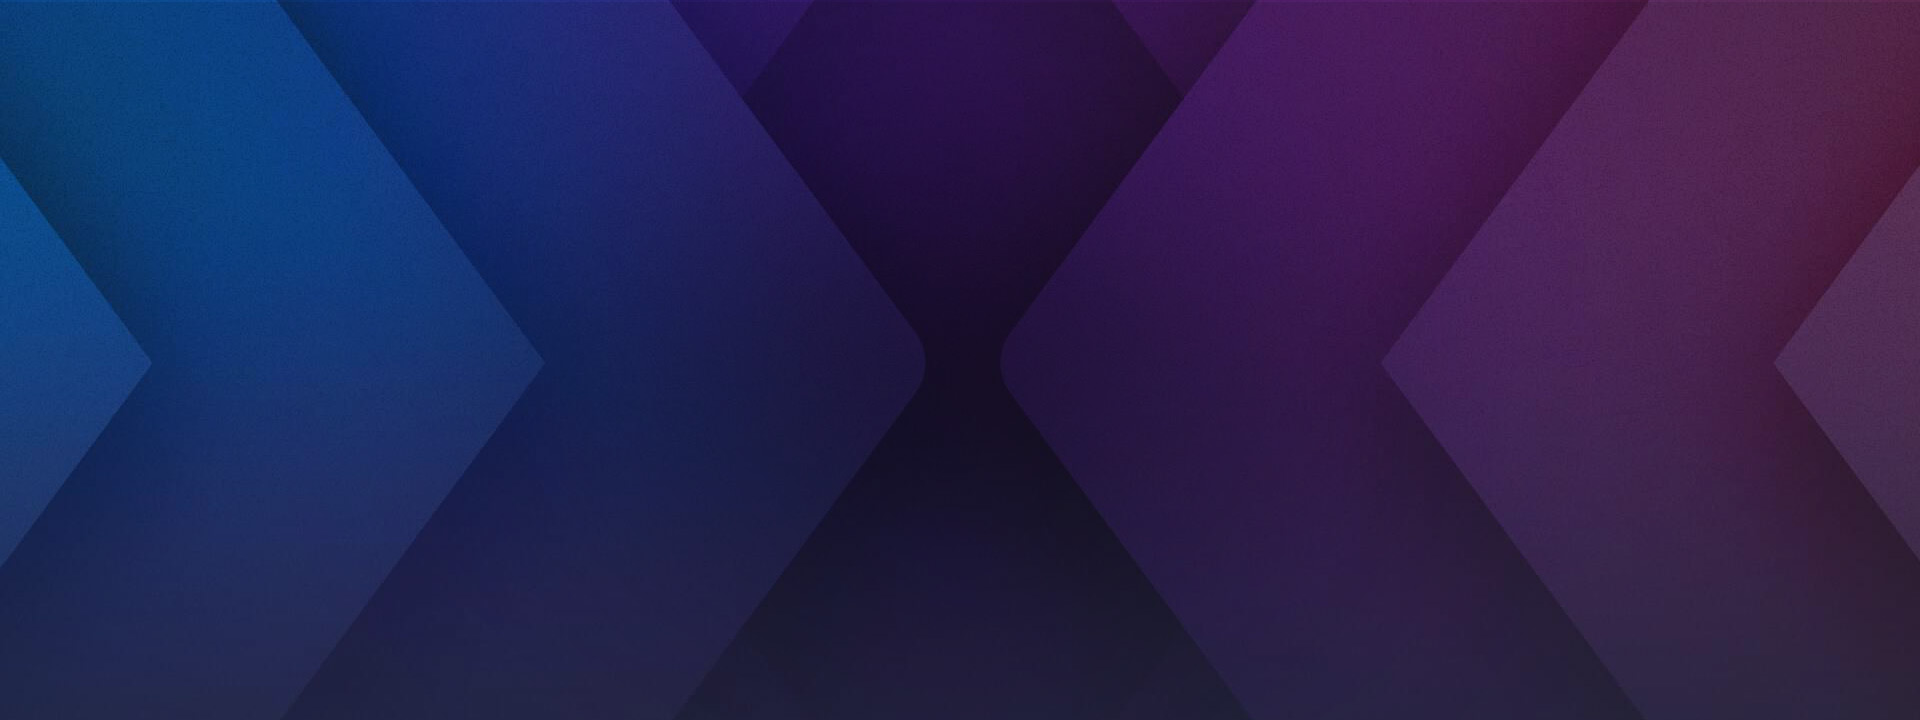 Blue to purple gradient of a stylized mixer logo X